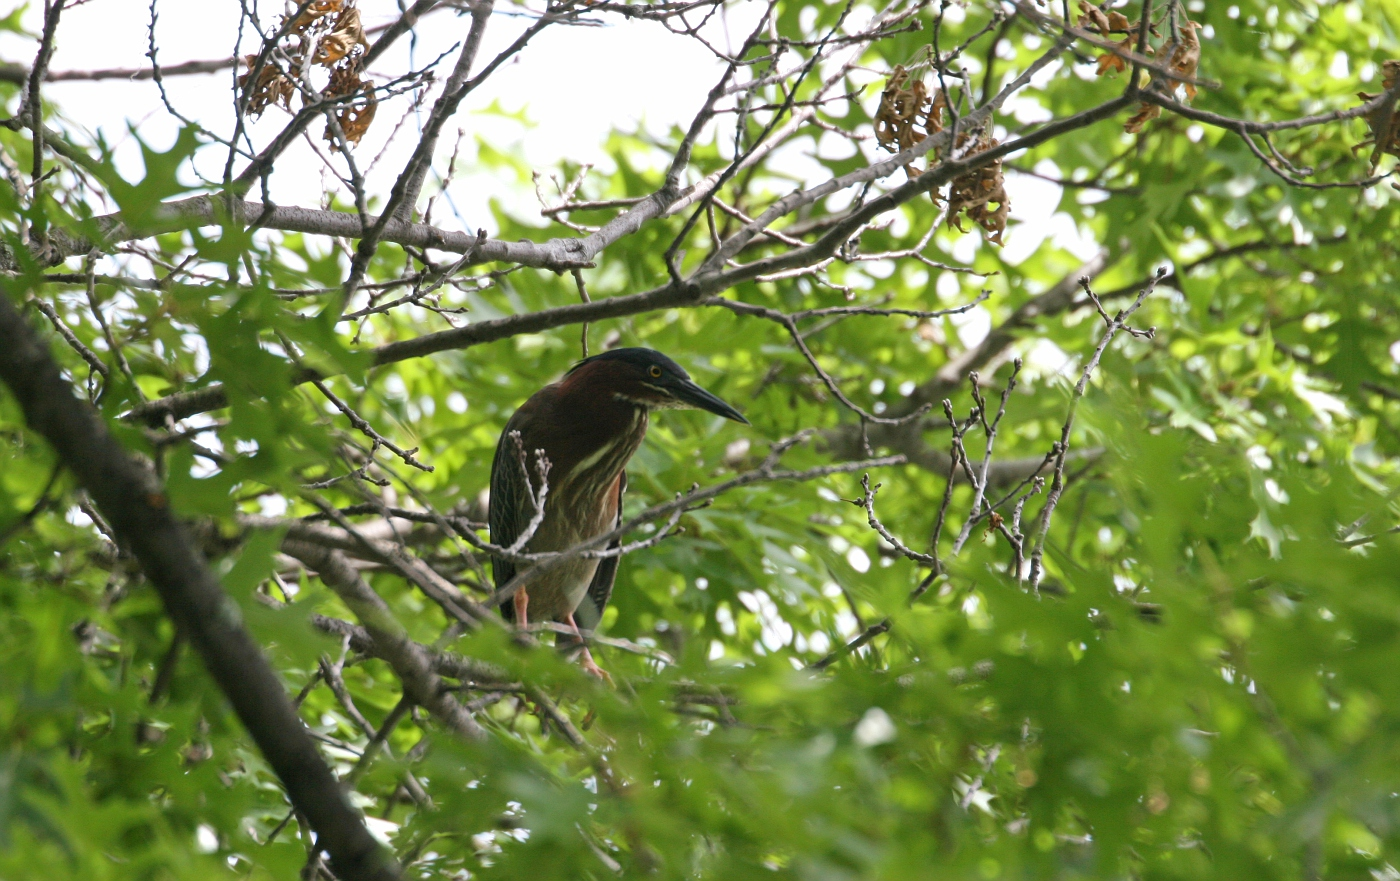 Adult Green Heron #3